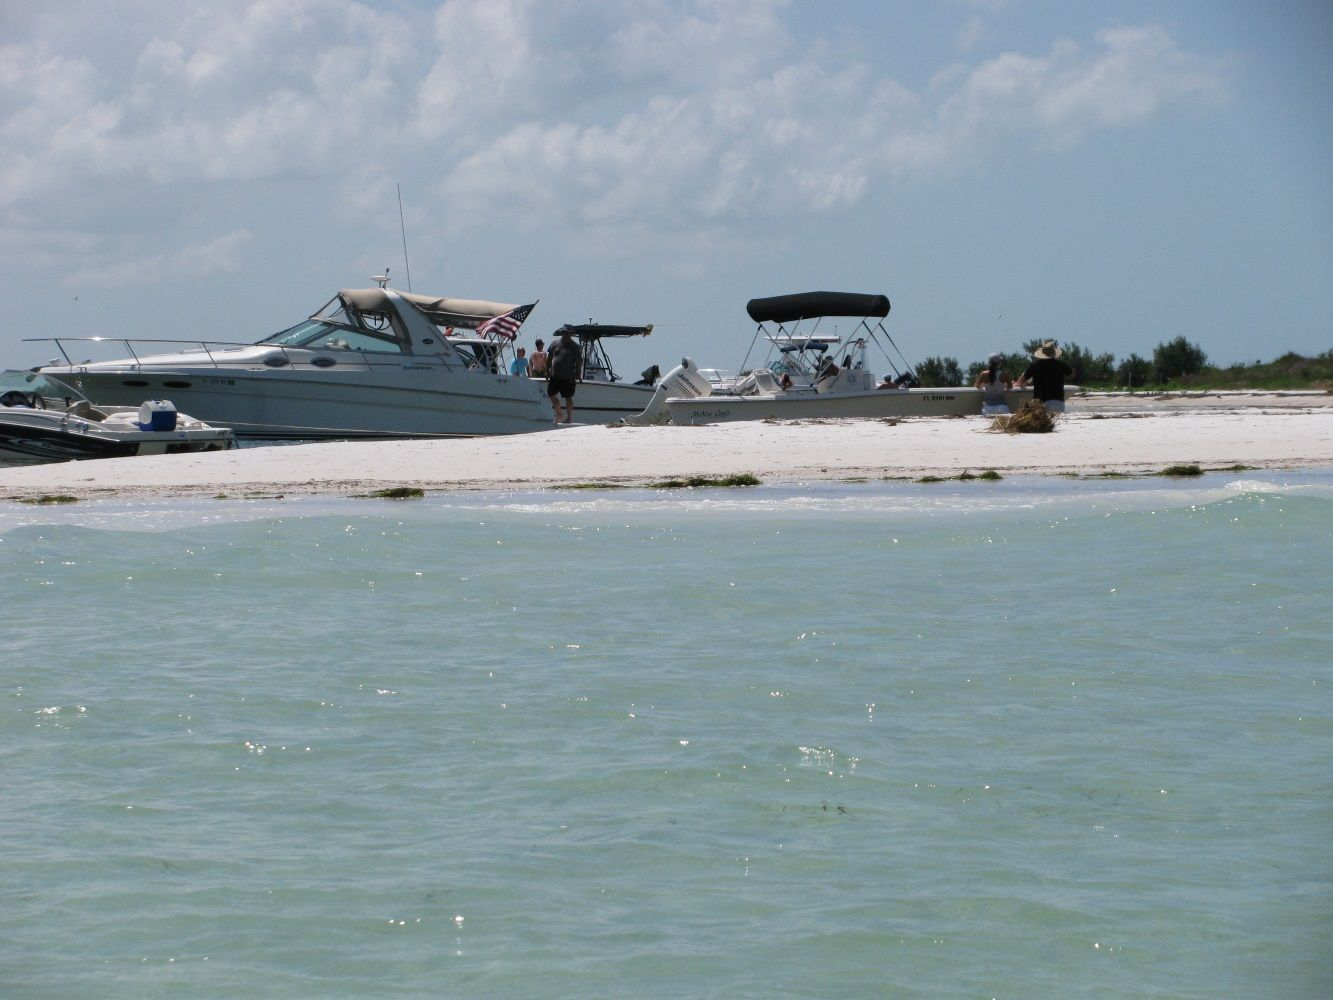 Island boating Clearwater beach florida, Florida beaches